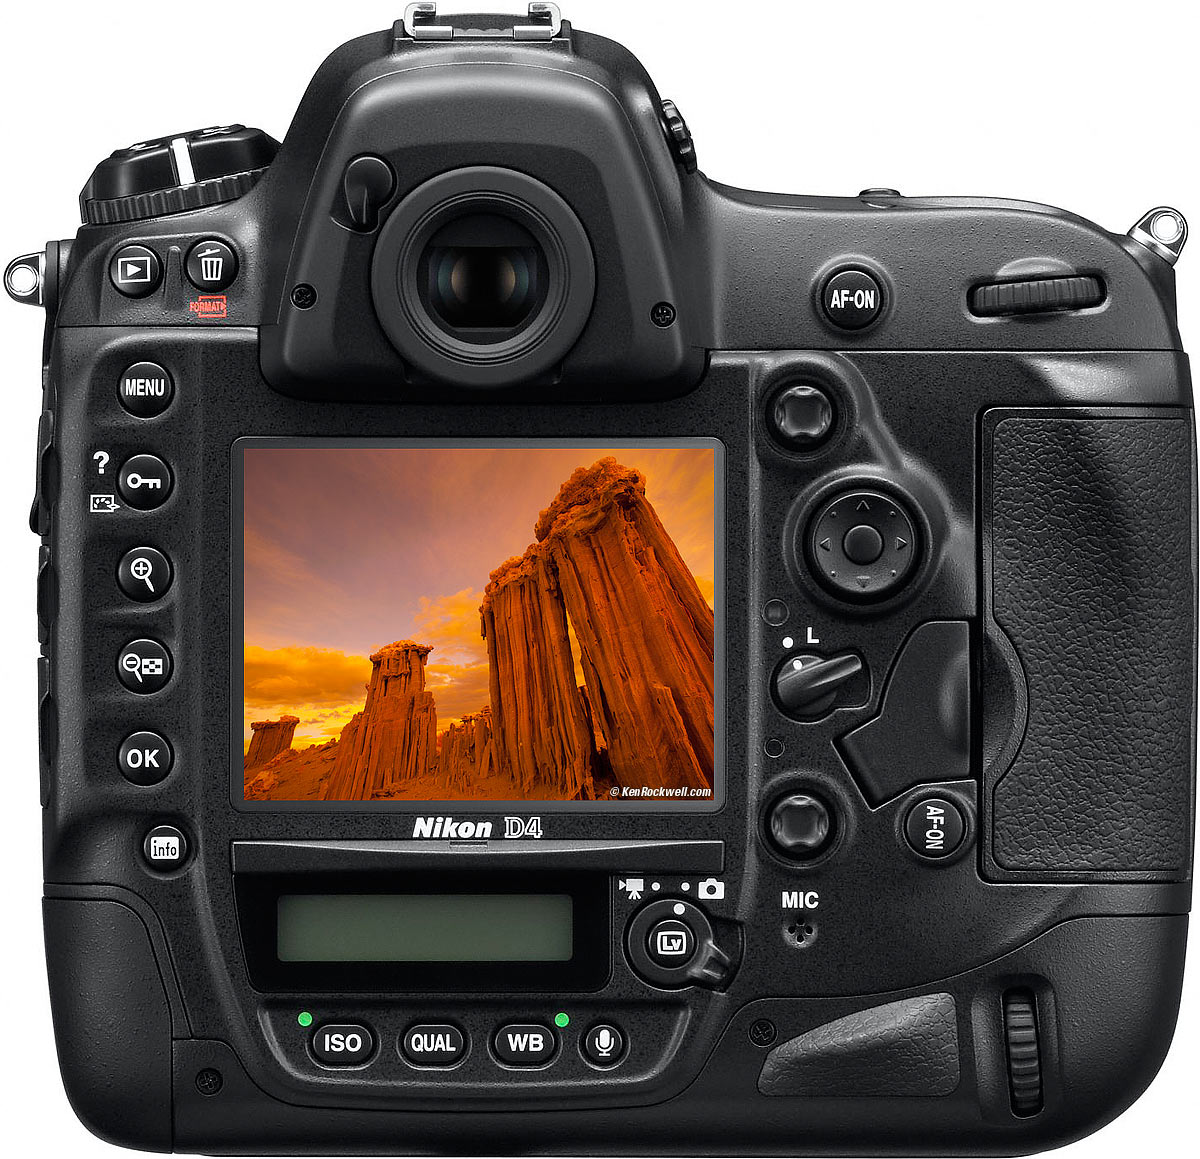 Nikon D4 Digital SLR Camera (Body Only).......1 unit.....$ 500 USD